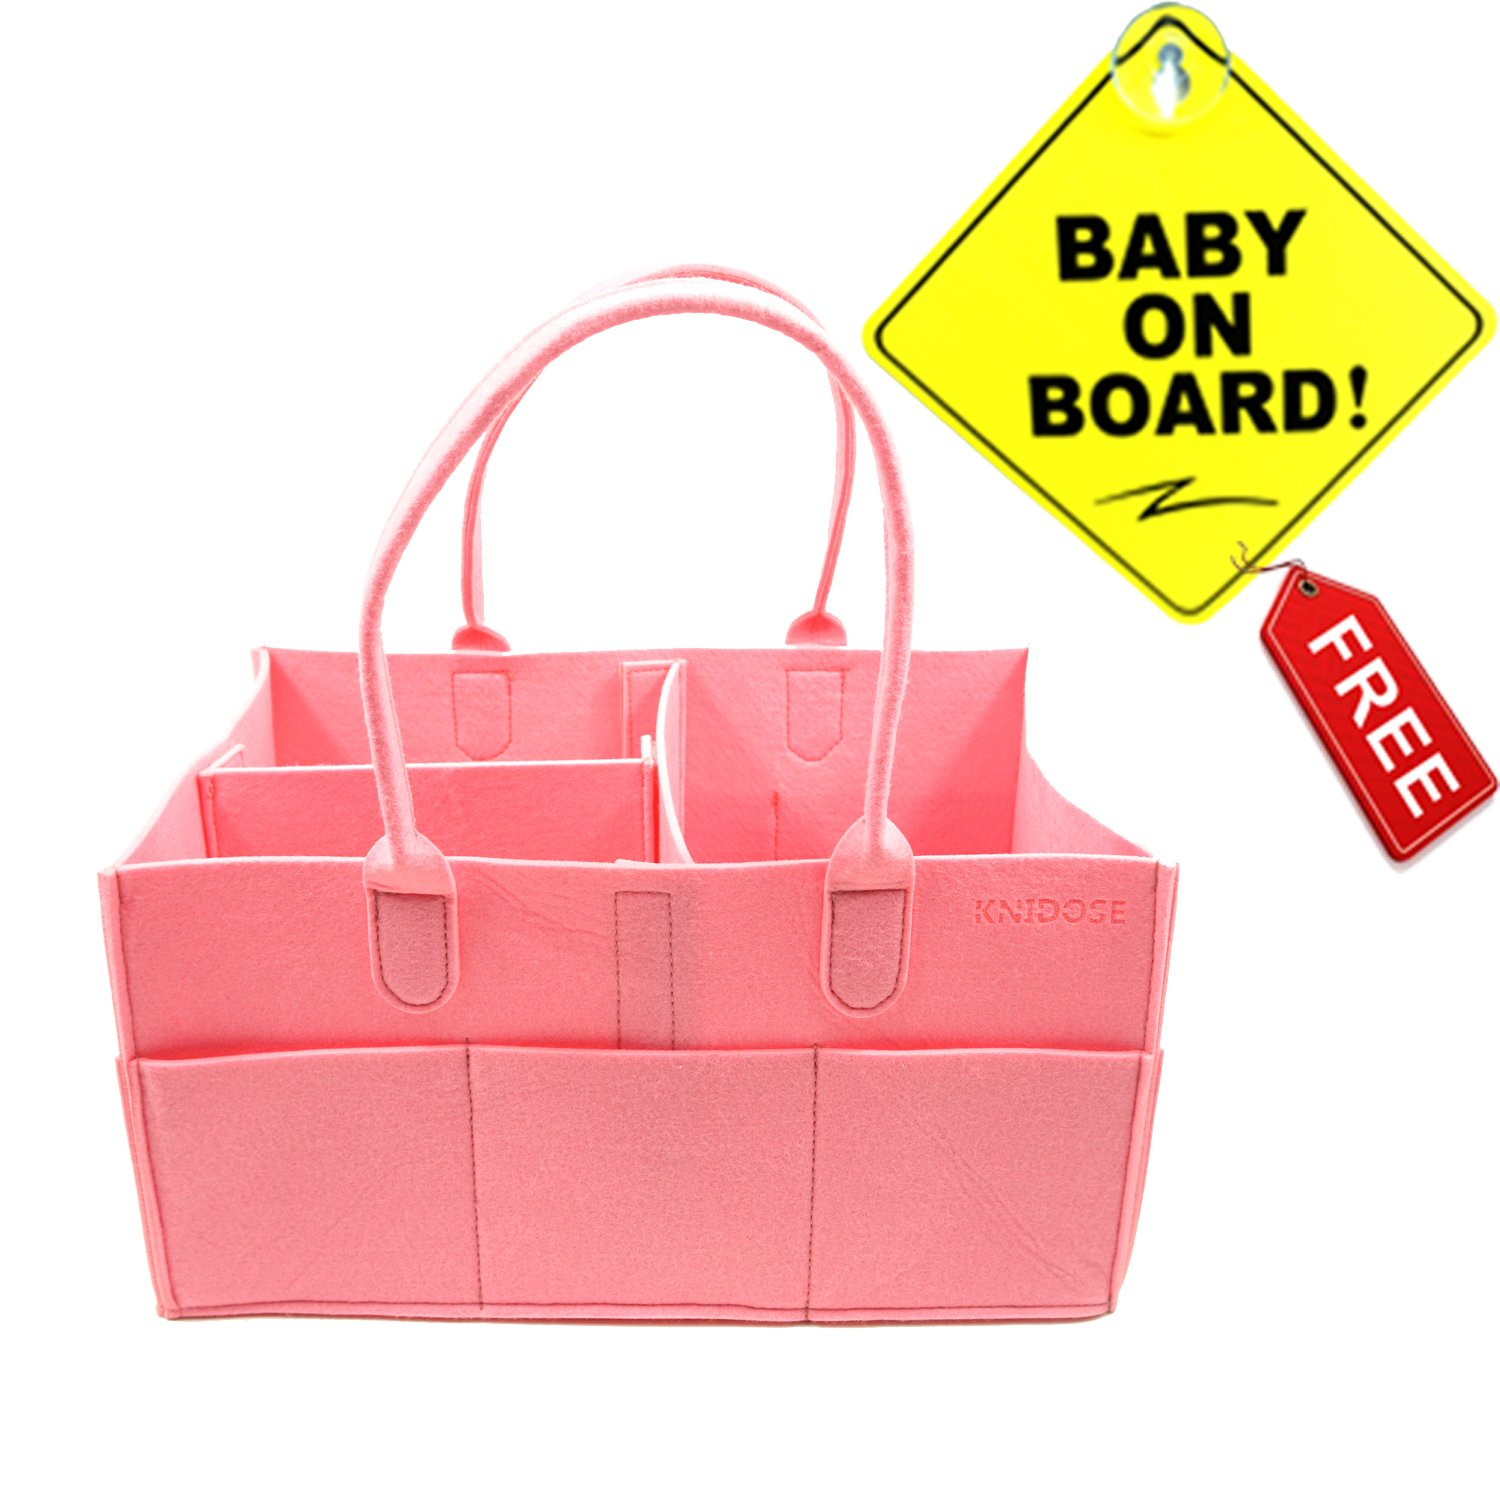 Baby Diaper Caddy Organizer Bag for Mom | Baby Shower Gift for Newborn | Portable Travel Nursery Storage for Boys & Girls | Baby On Board Sign with Suction Cup for Car (Pink)